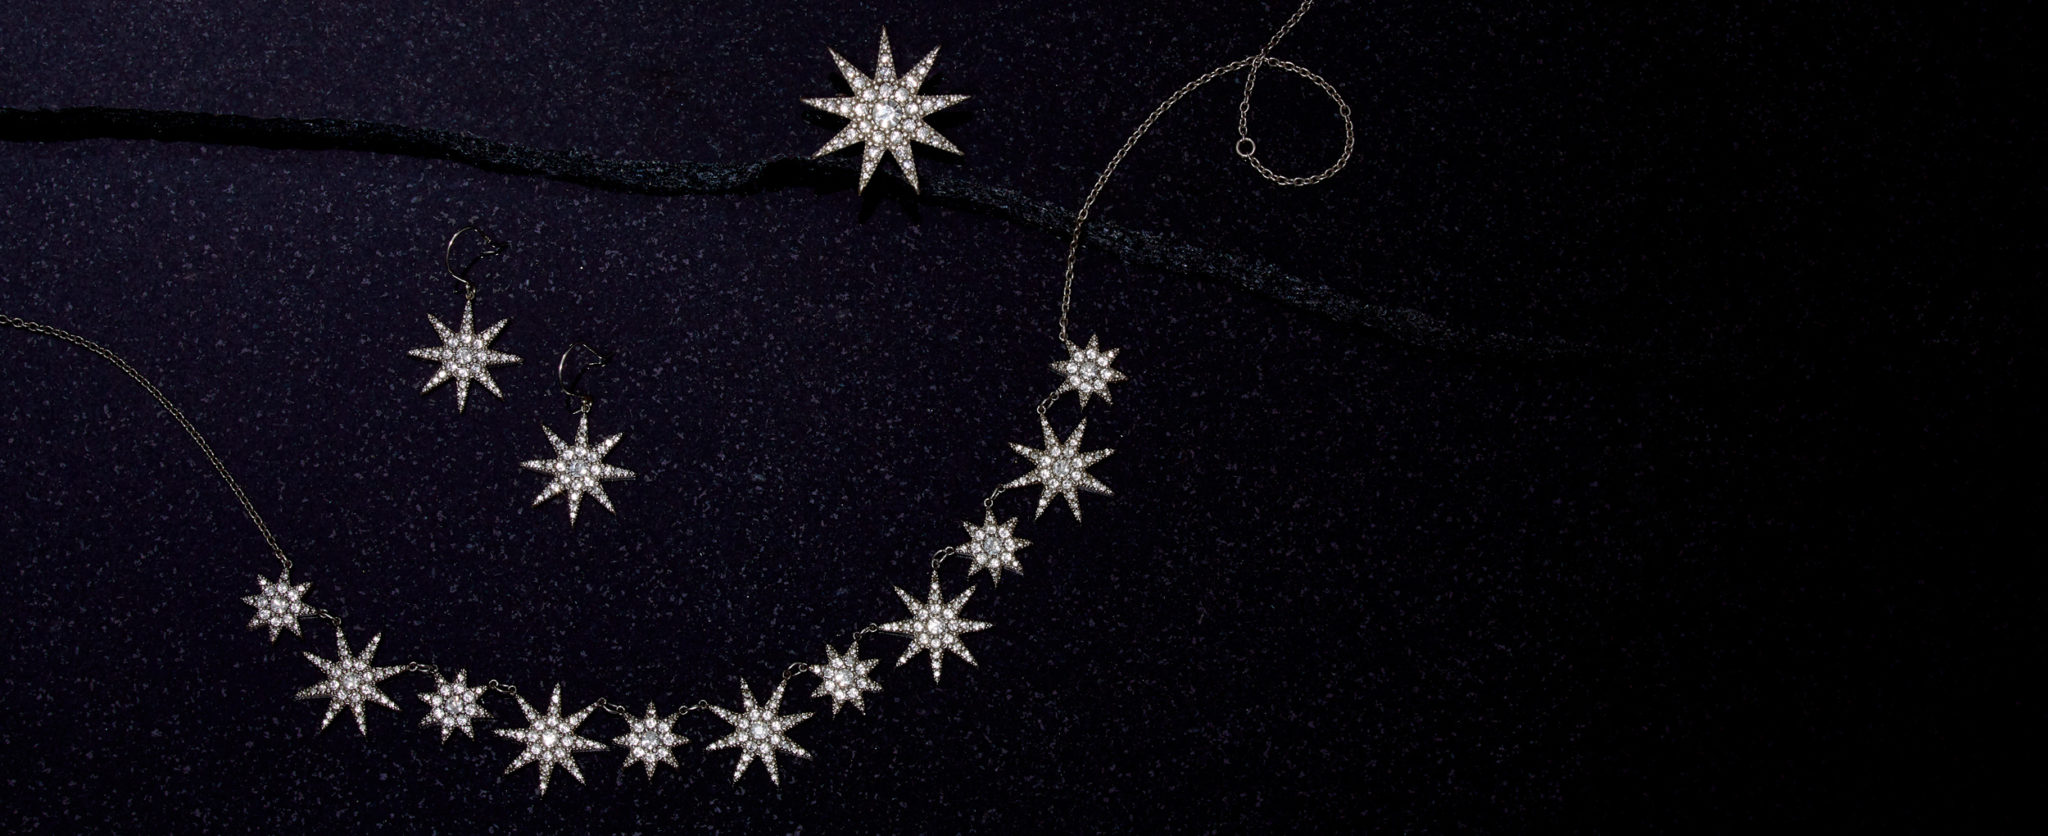 group jewelry photograph of a silver and pave diamond necklace, earrings, and pin all in the shape of an Ottoman star on dark dark purple speckled granite evoking the night sky